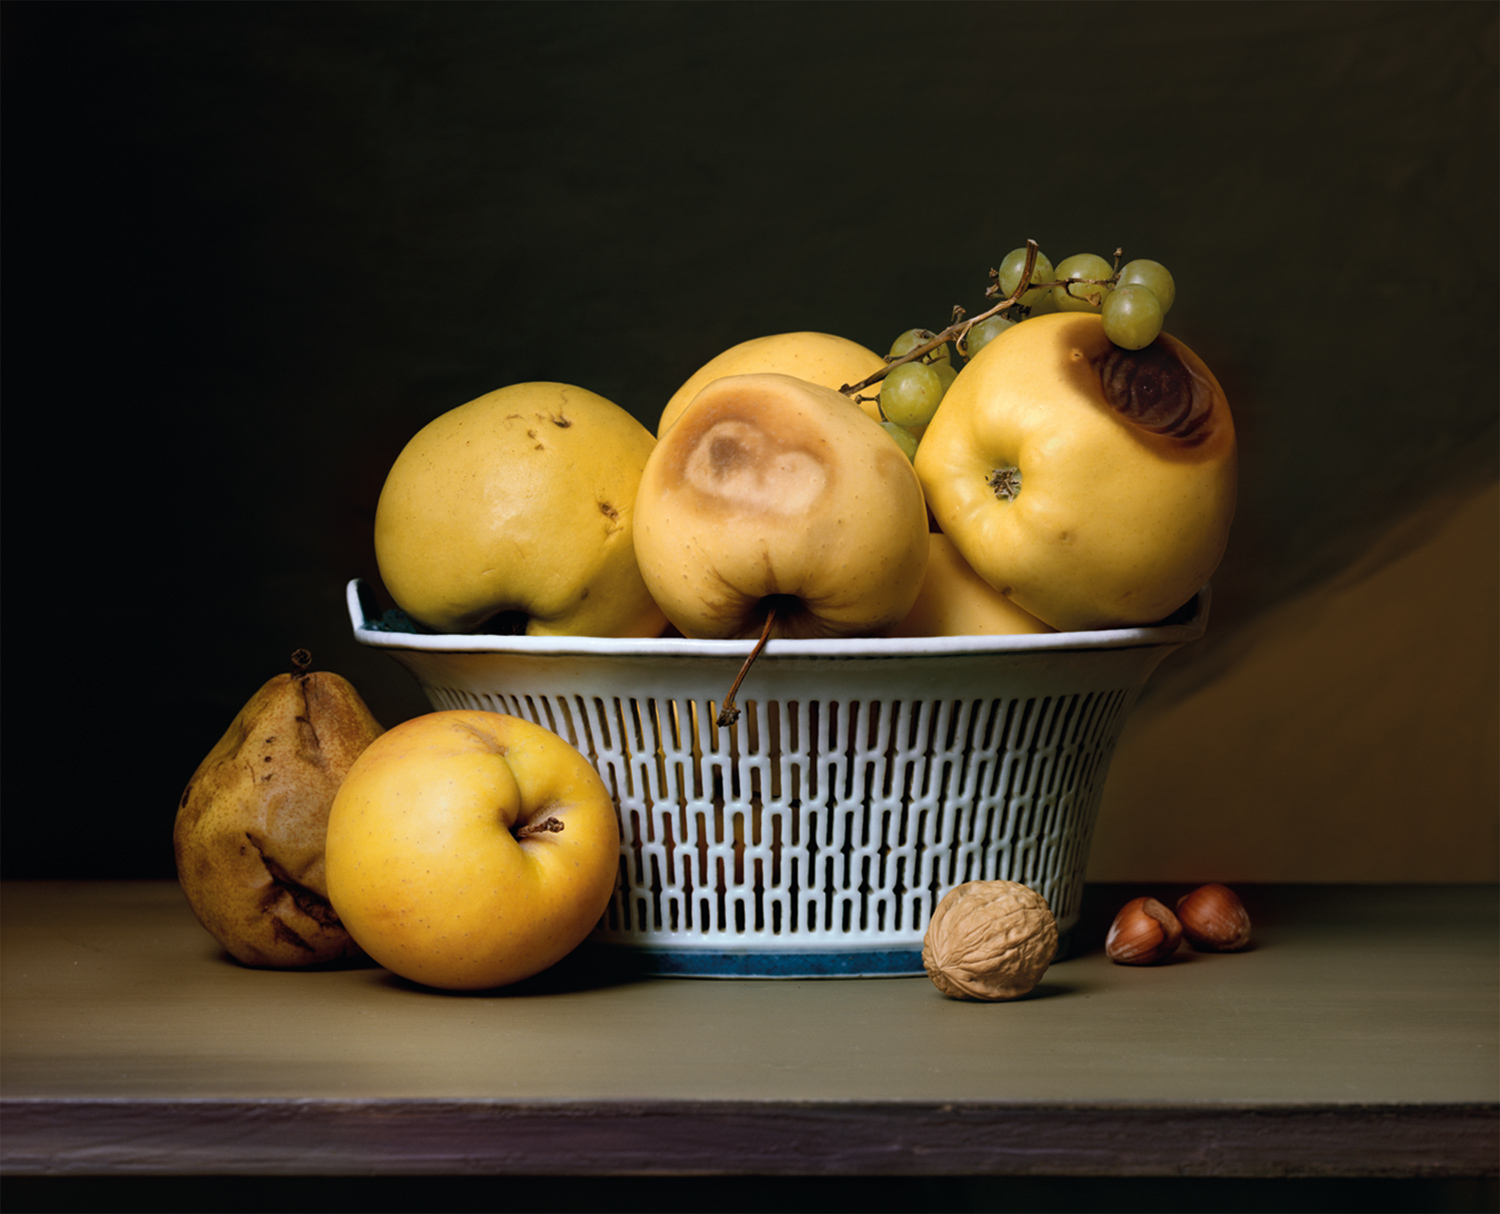 Plate 6 - Apples in a Porcelain Basket